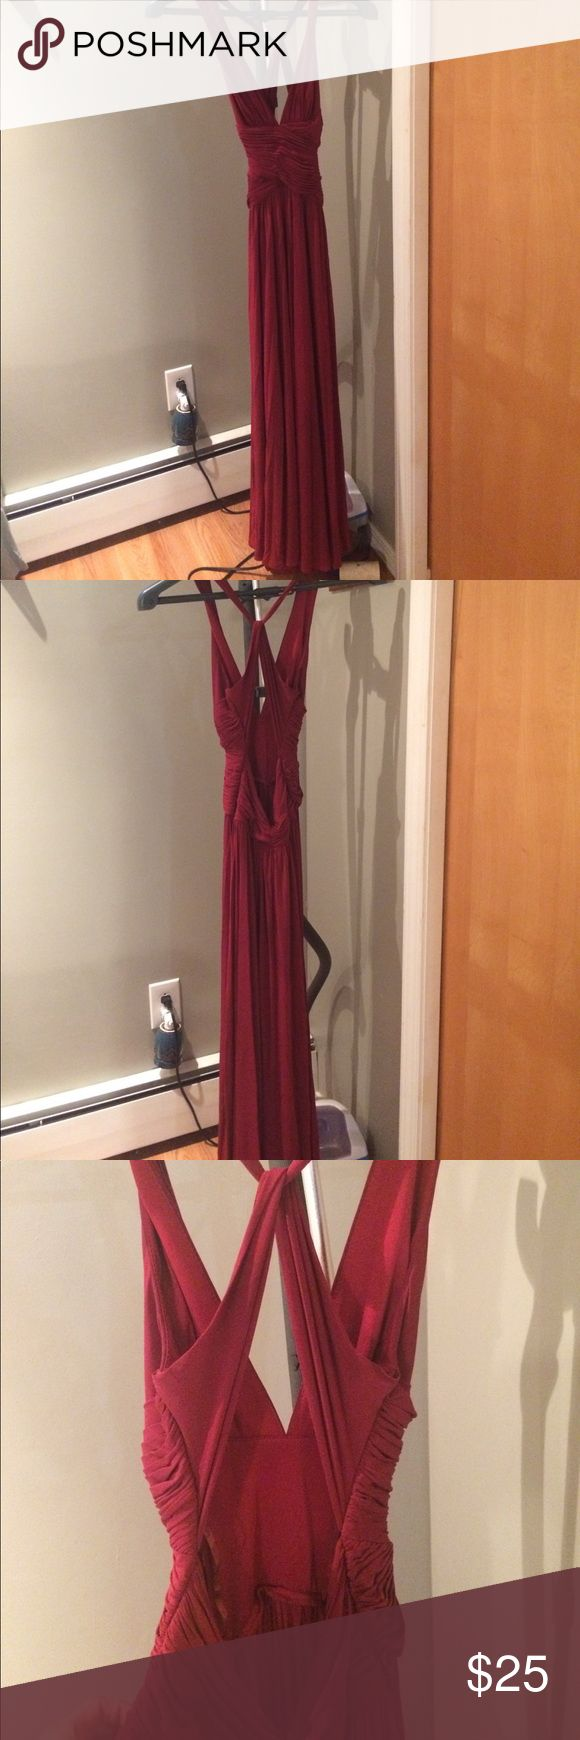 BCBG XS Red Dress for sale! BCBG XS Red Dress for sale! Perfect condition! Dresses Maxi